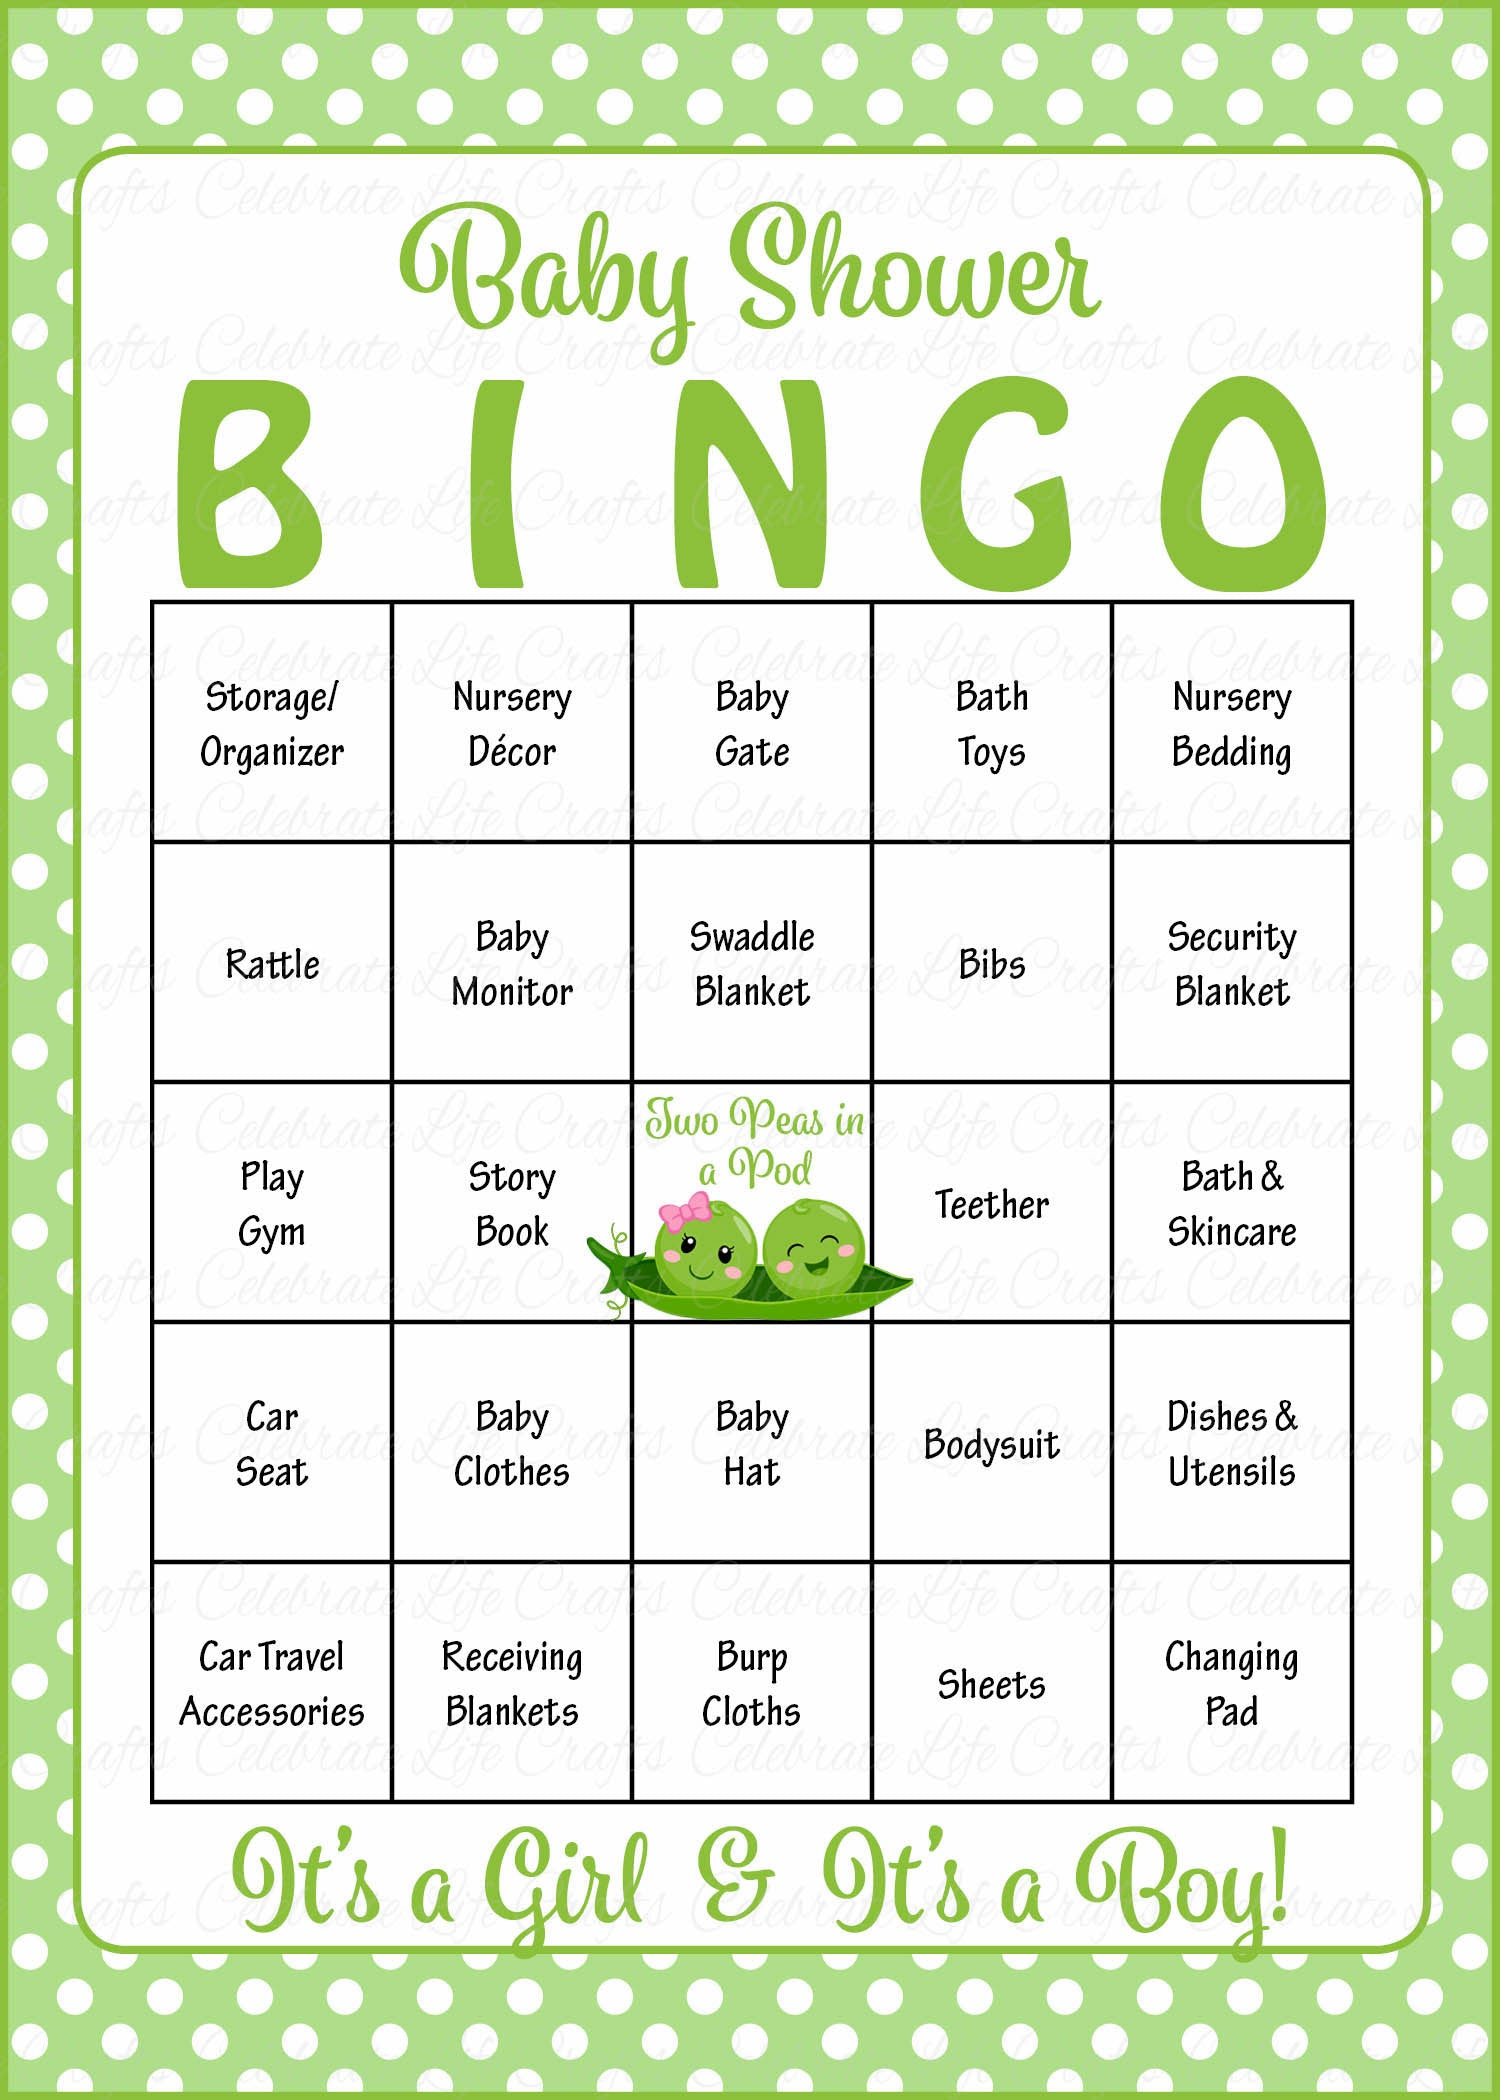 Peas in a pod baby shower game download for boy girl twins baby peas in a pod baby bingo cards printable download prefilled baby shower game for boy girl twins b29003 solutioingenieria Gallery